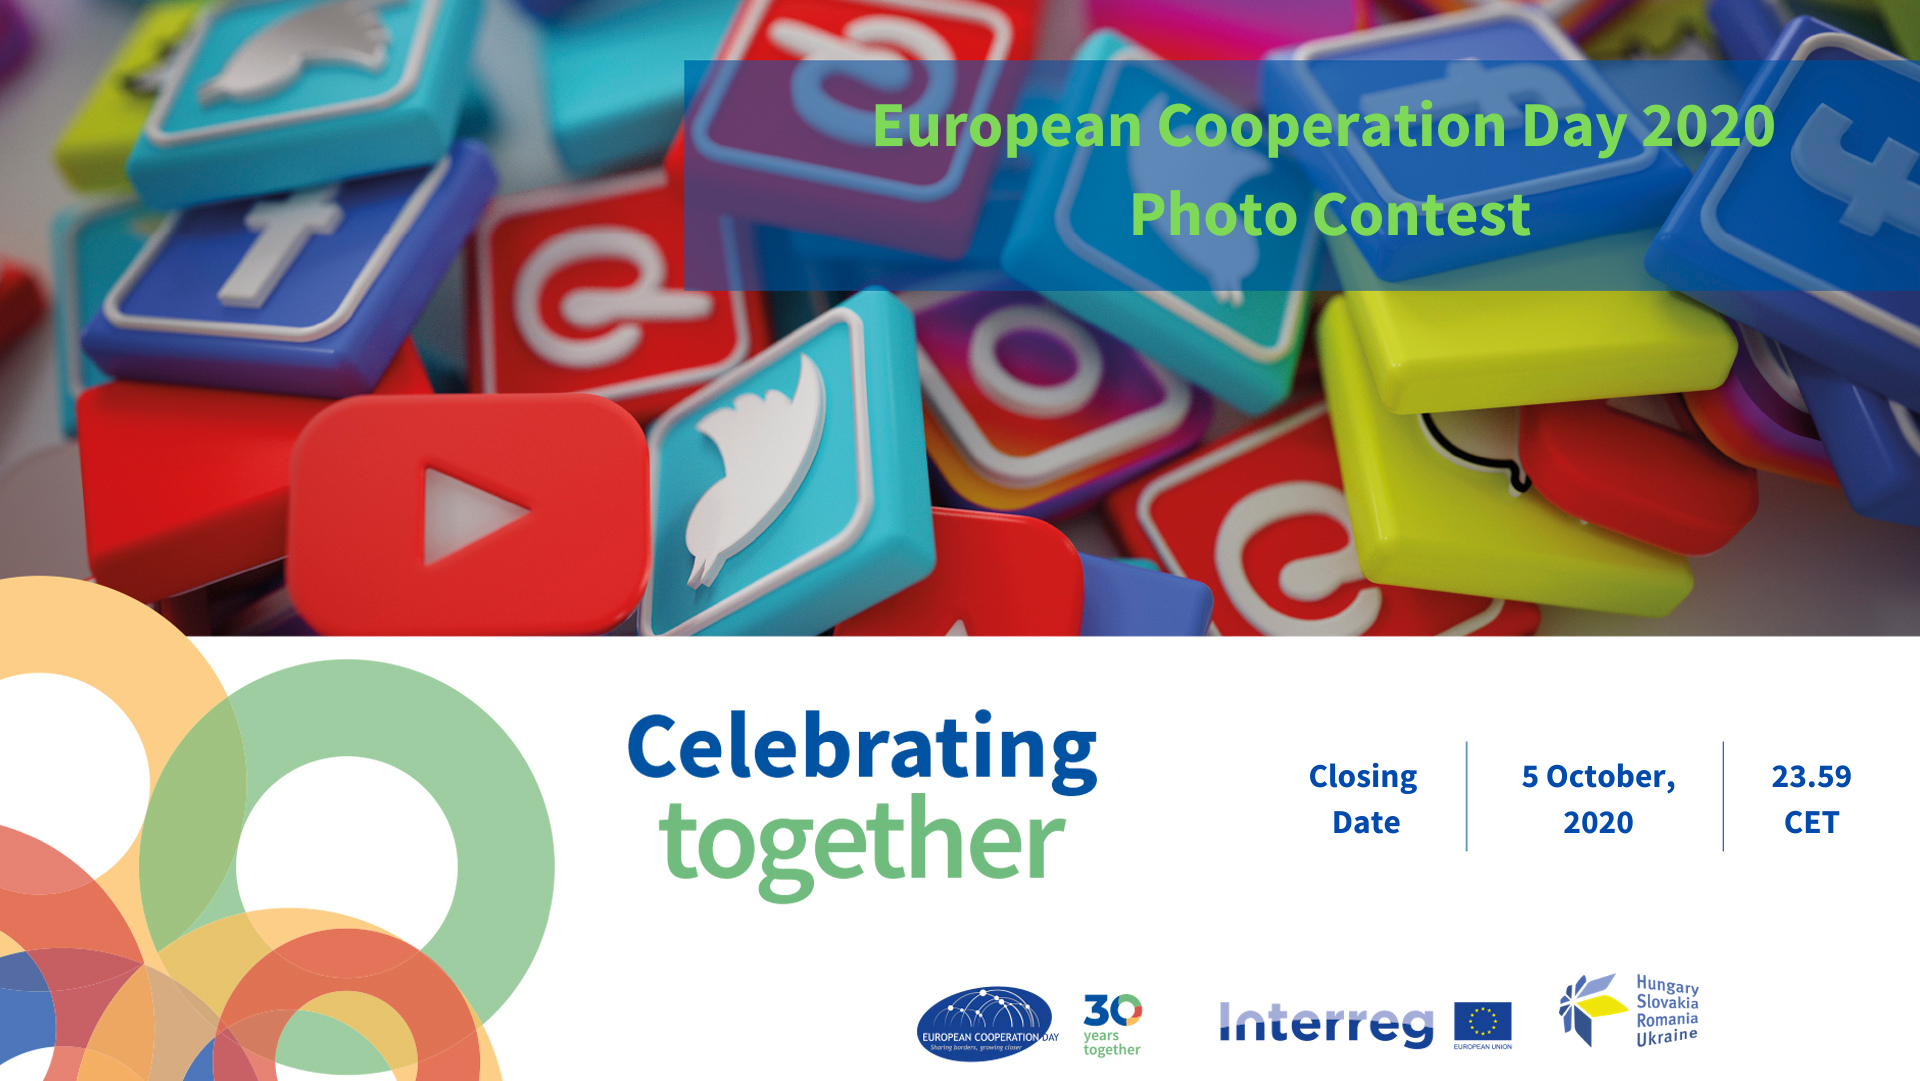 Photo Contest dedicated to the European Cooperation Day 2020